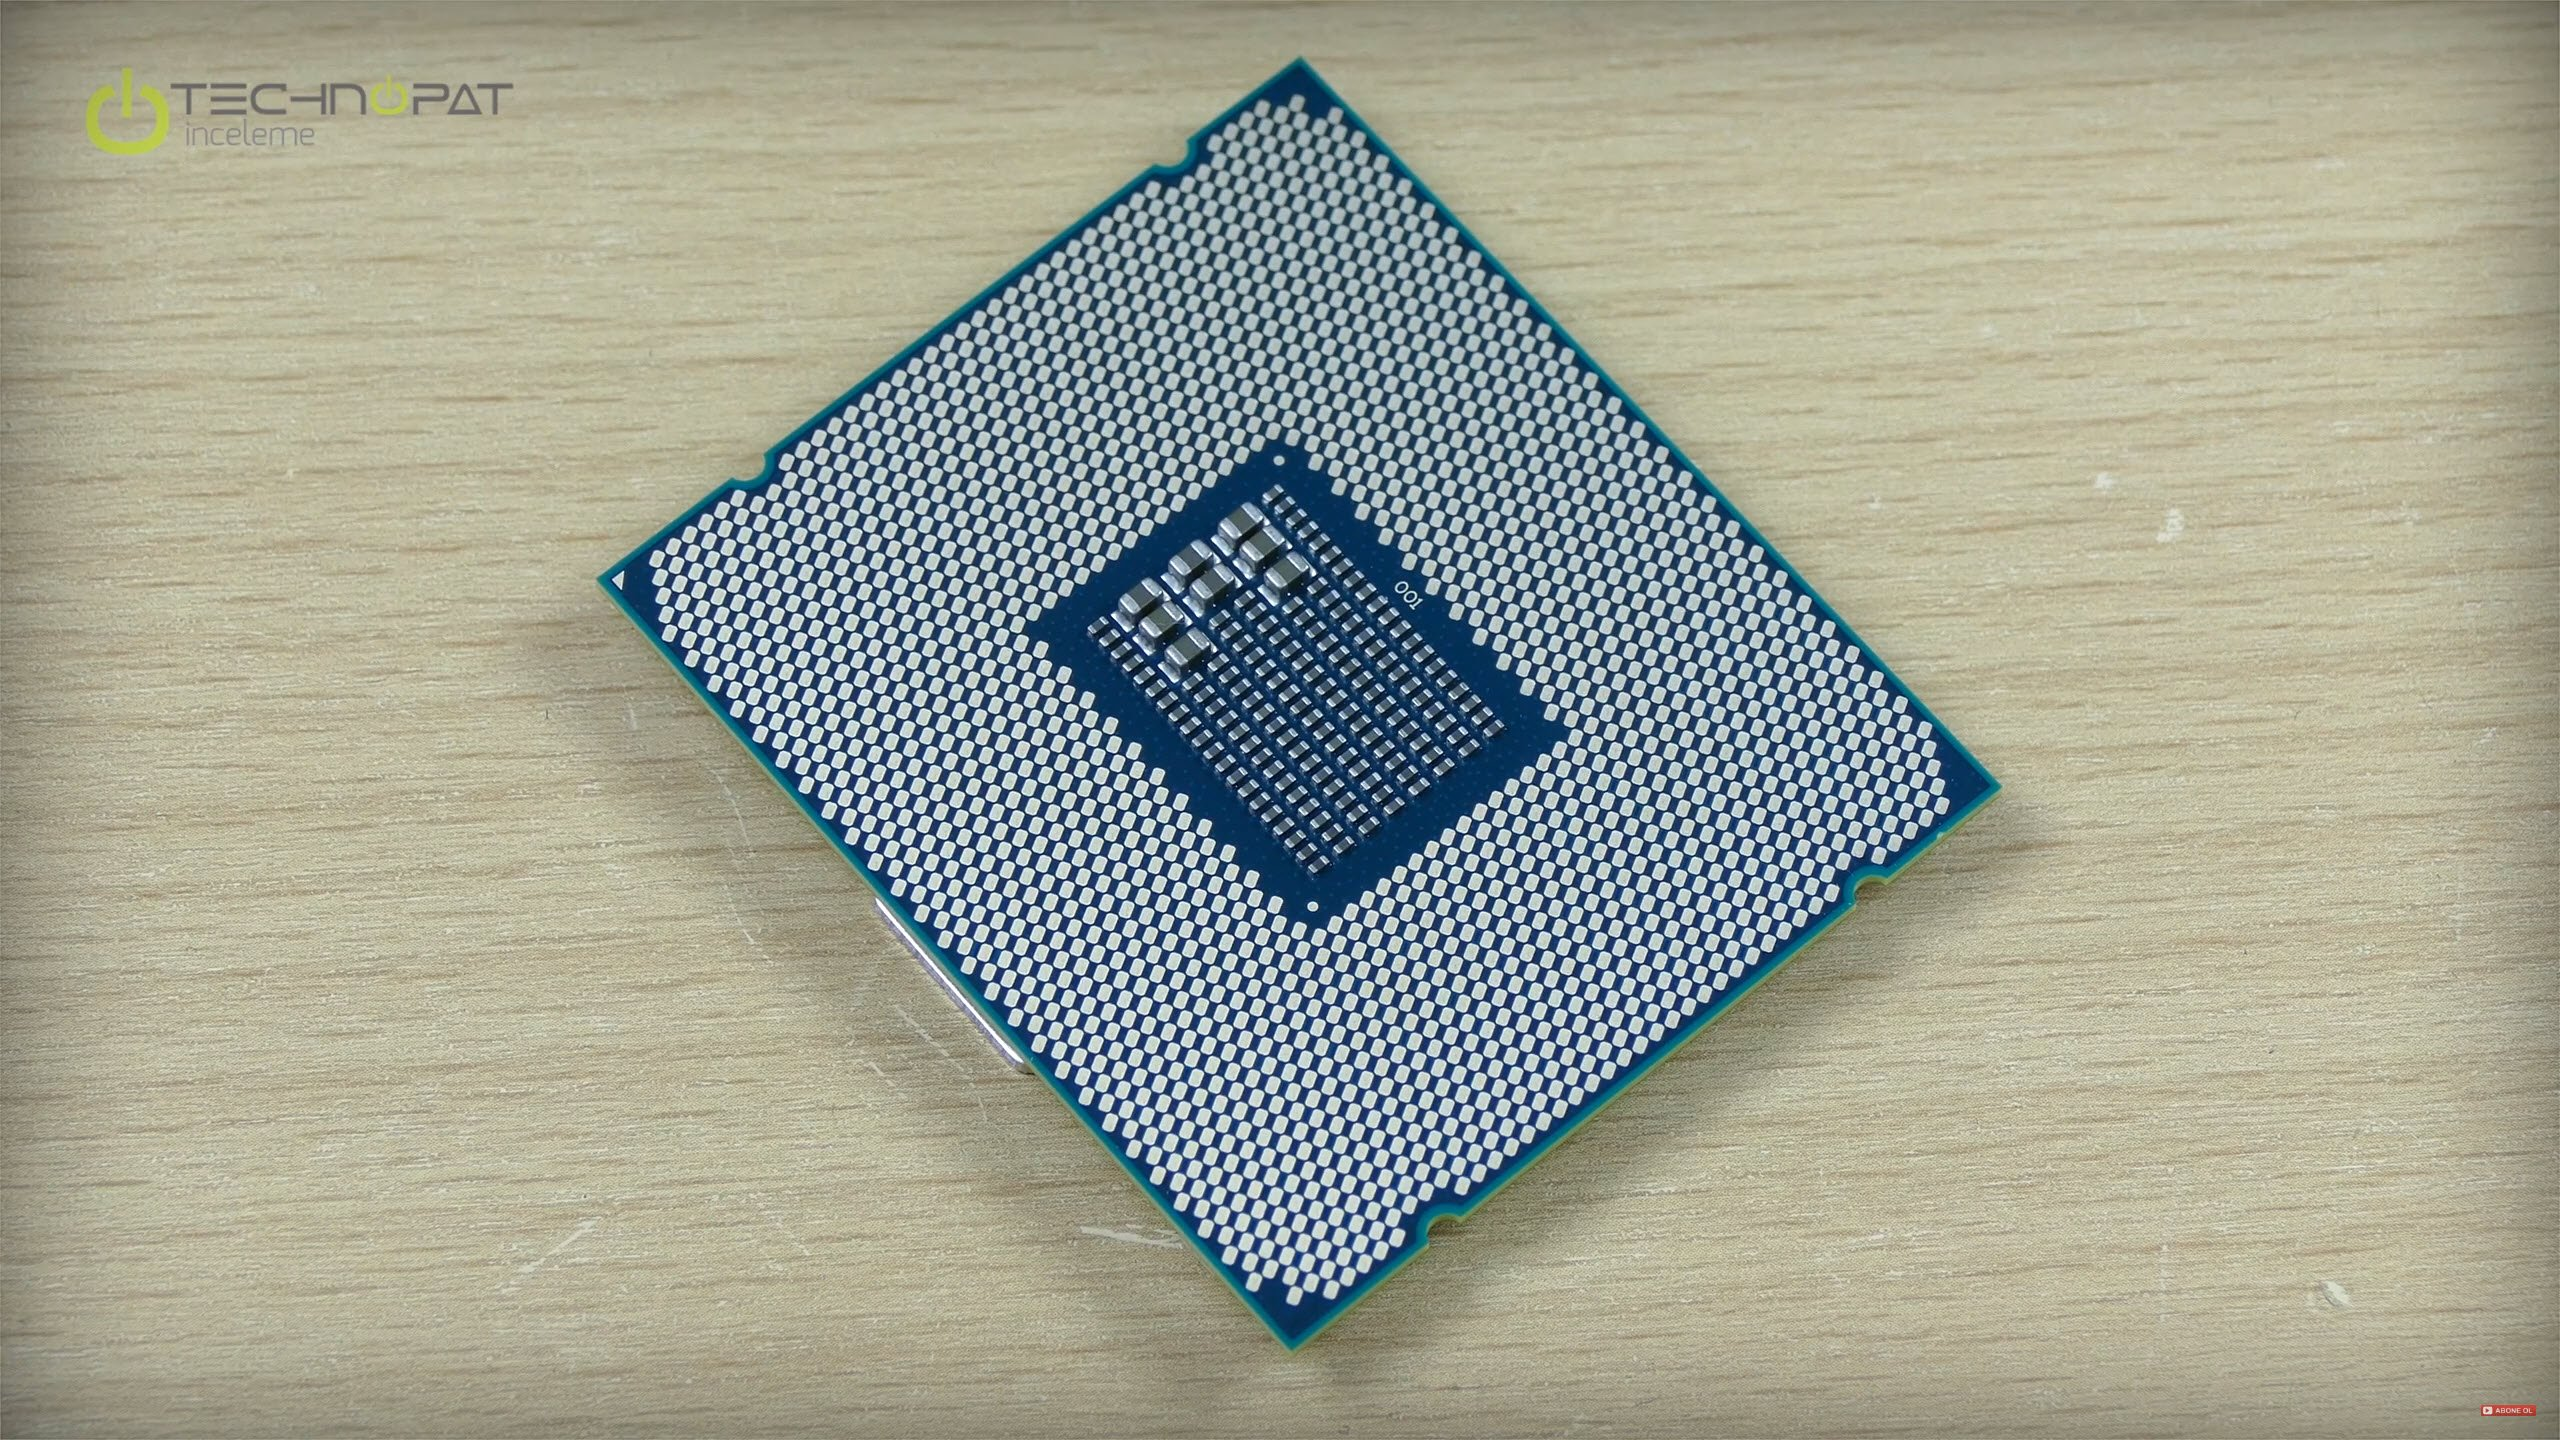 Core i7 6900K LGA 2011-V3 standardında